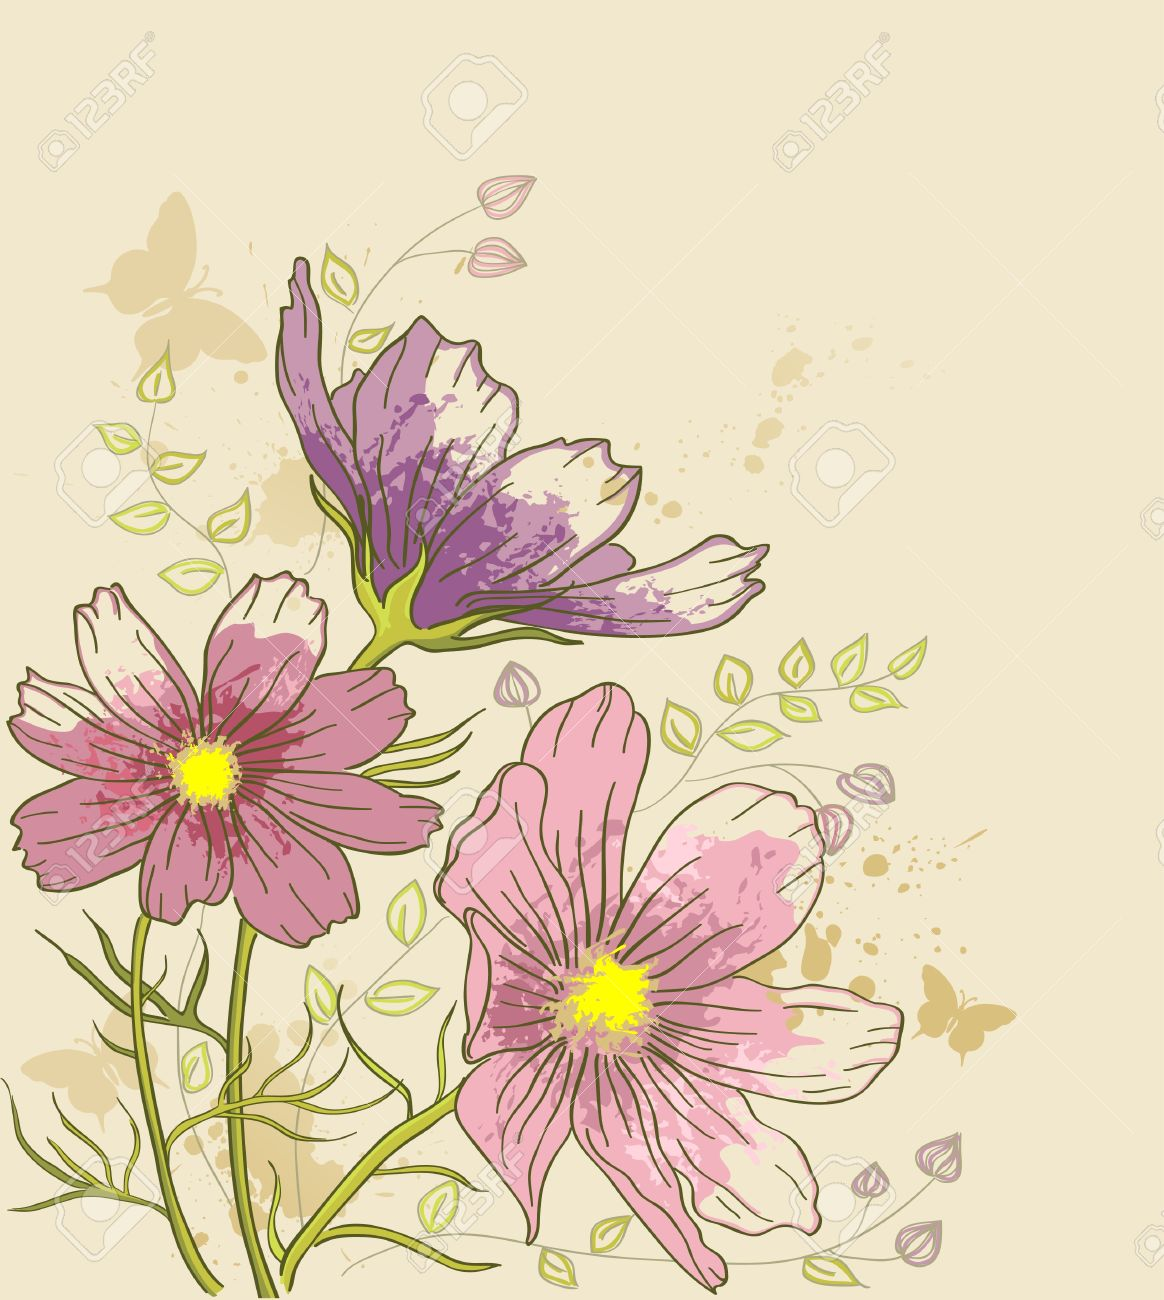 vintage vector floral background with cosmos flowers Stock Vector - 9699070